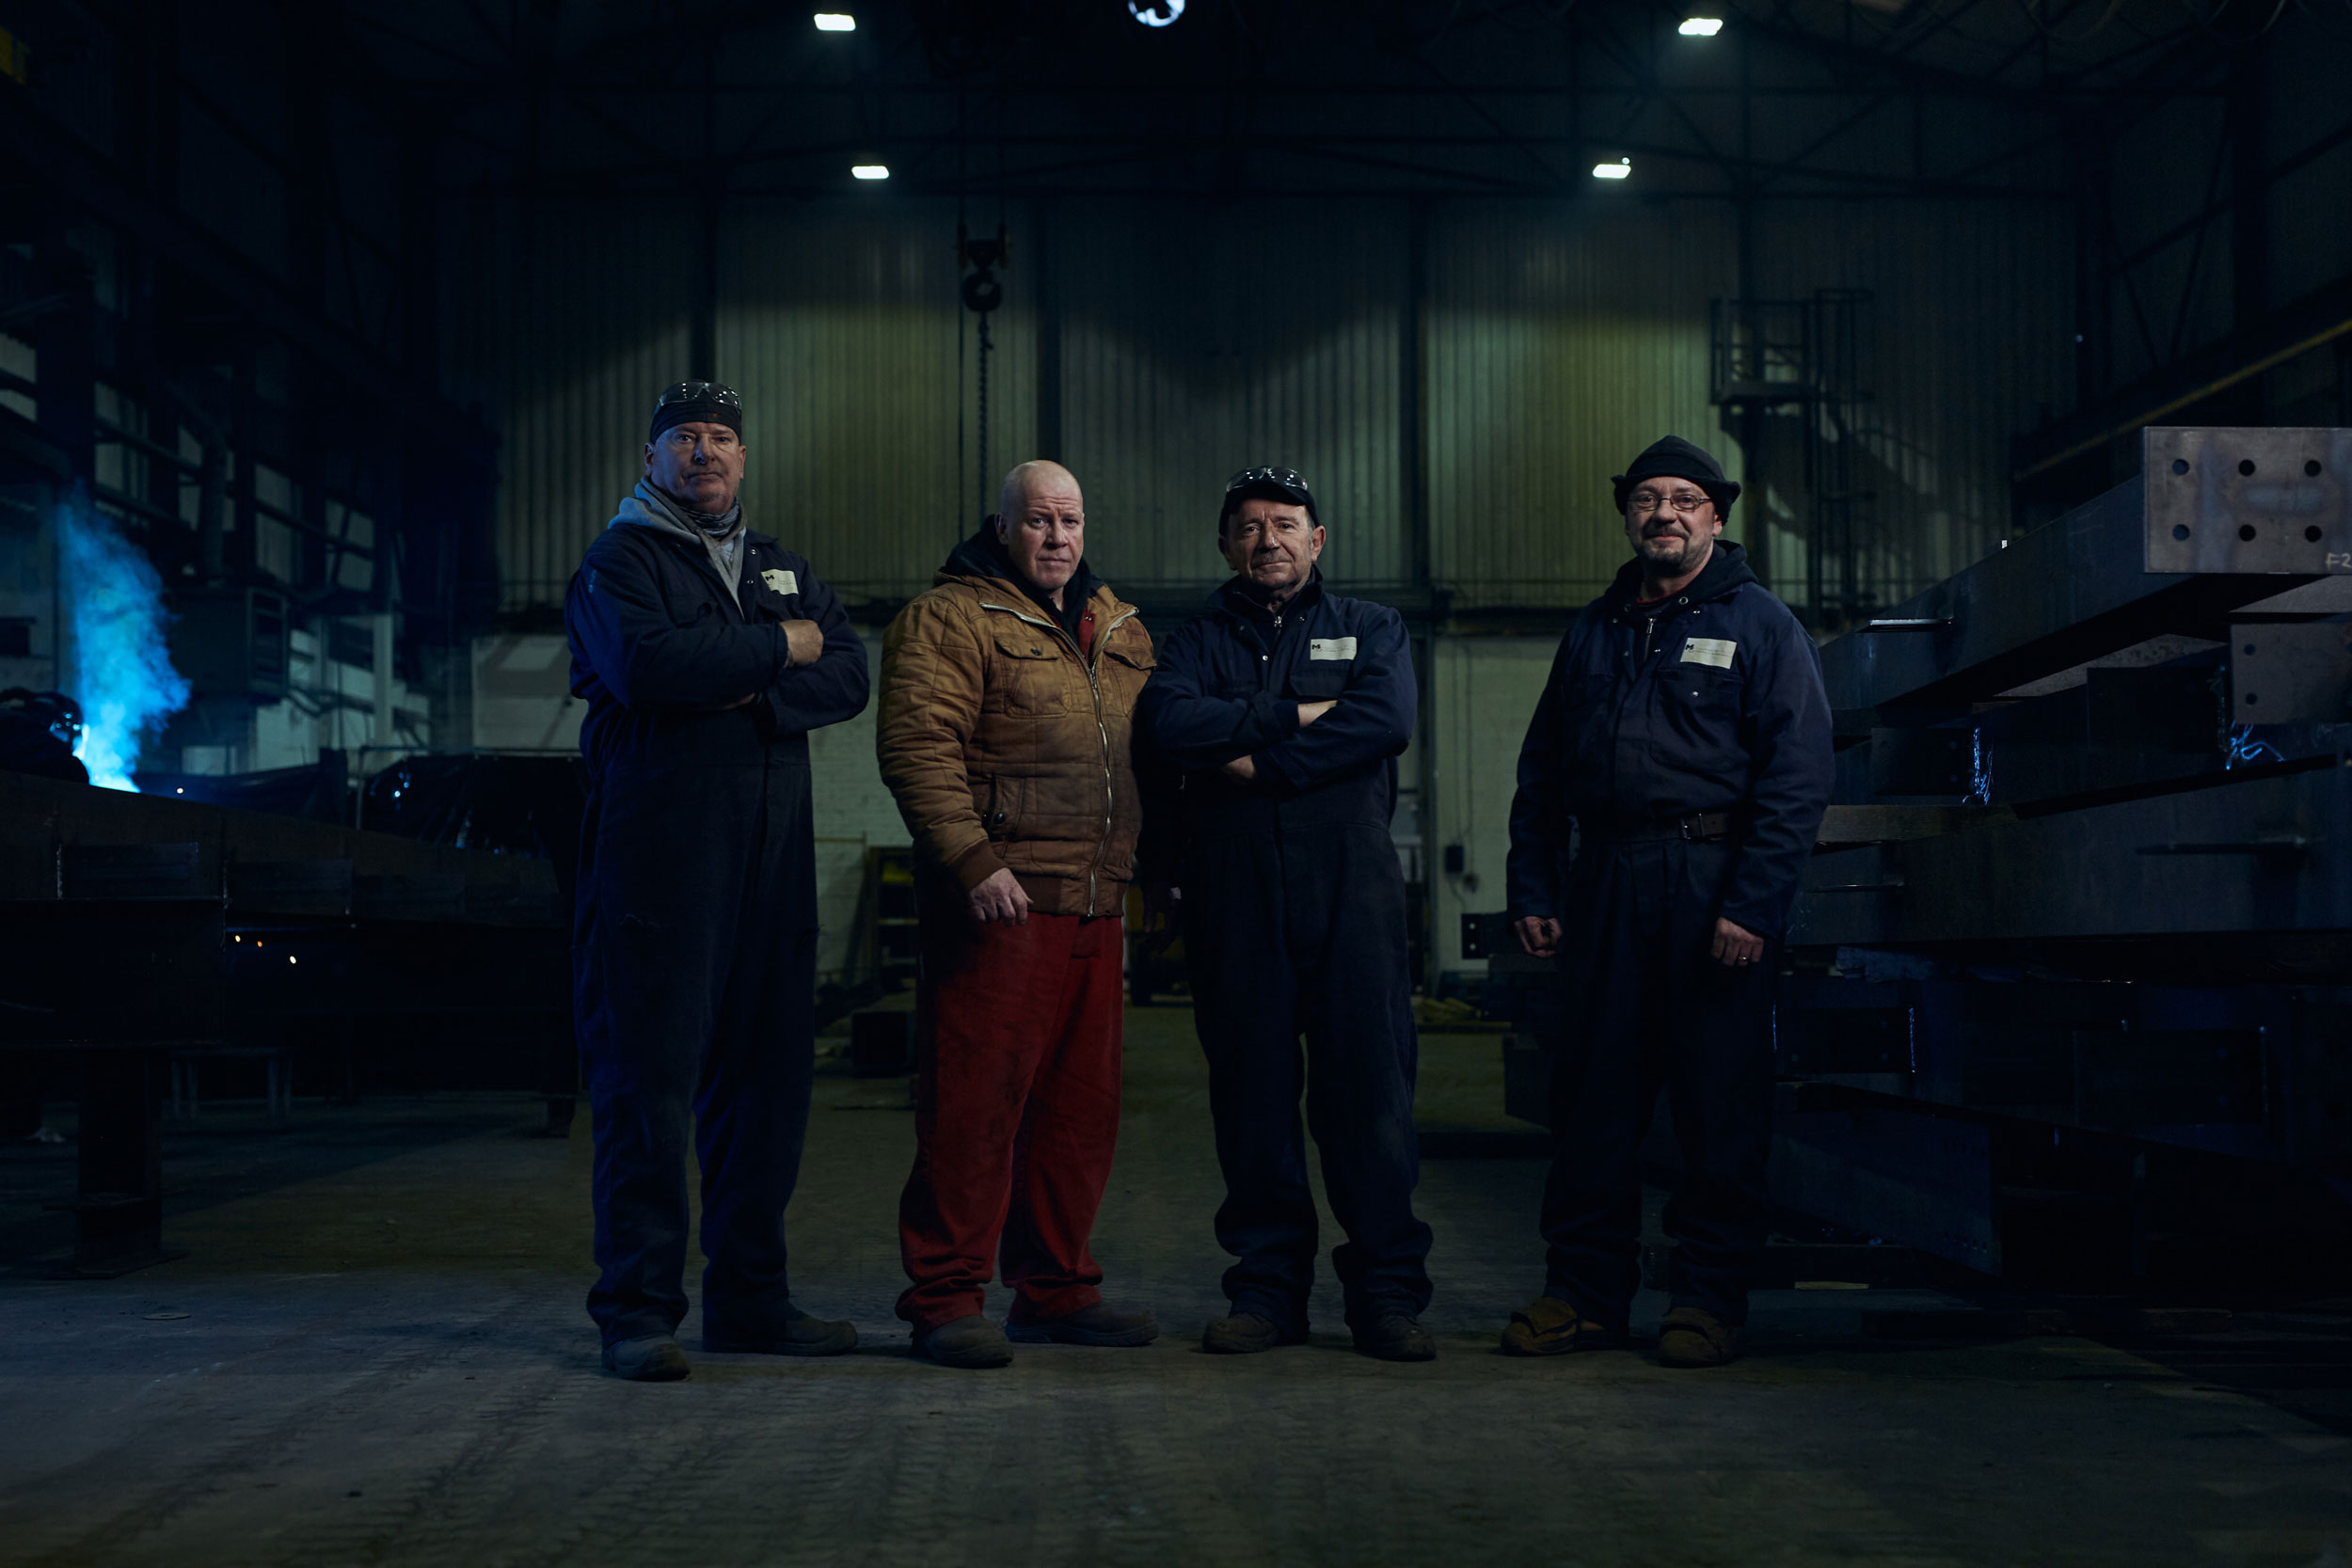 Four steelworkers stand in the dark factory they work in.